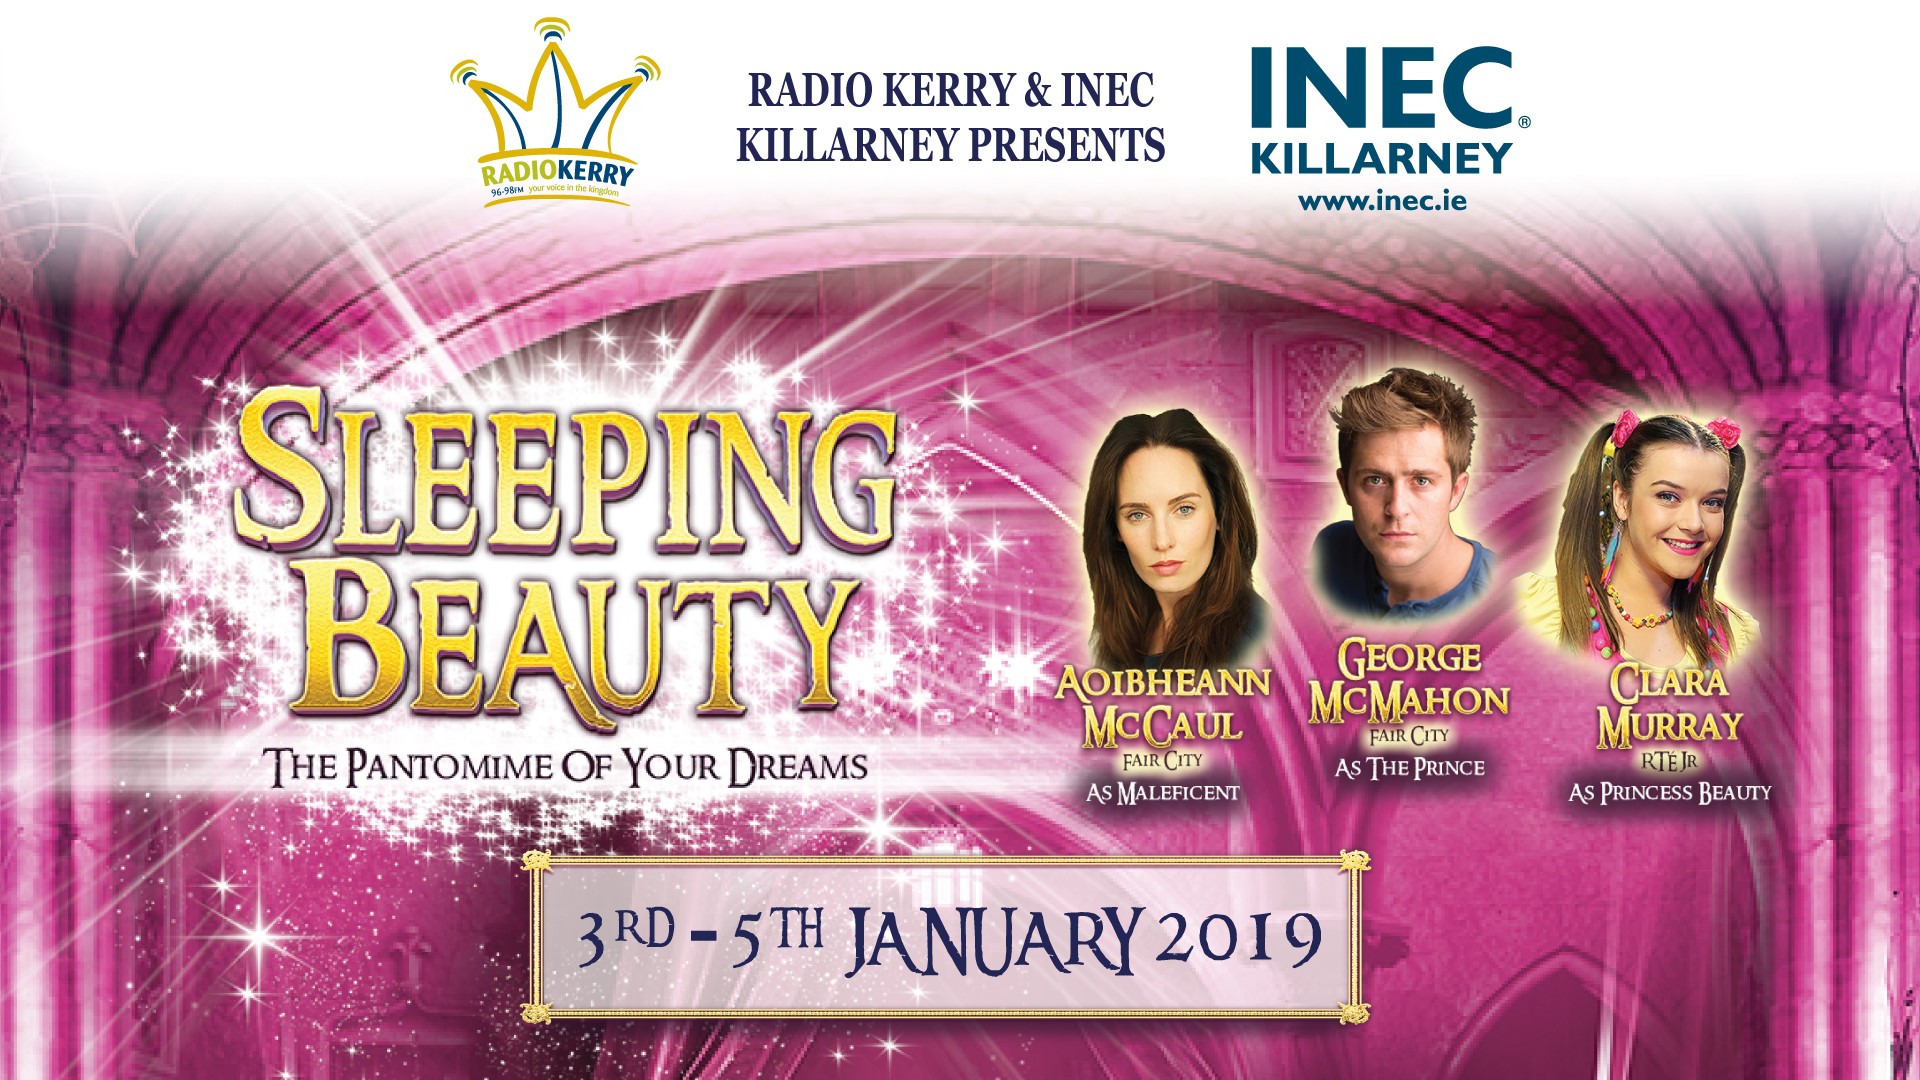 Sleeping Beauty Panto comes to the INEC Killarney on Jan 3-5 2019